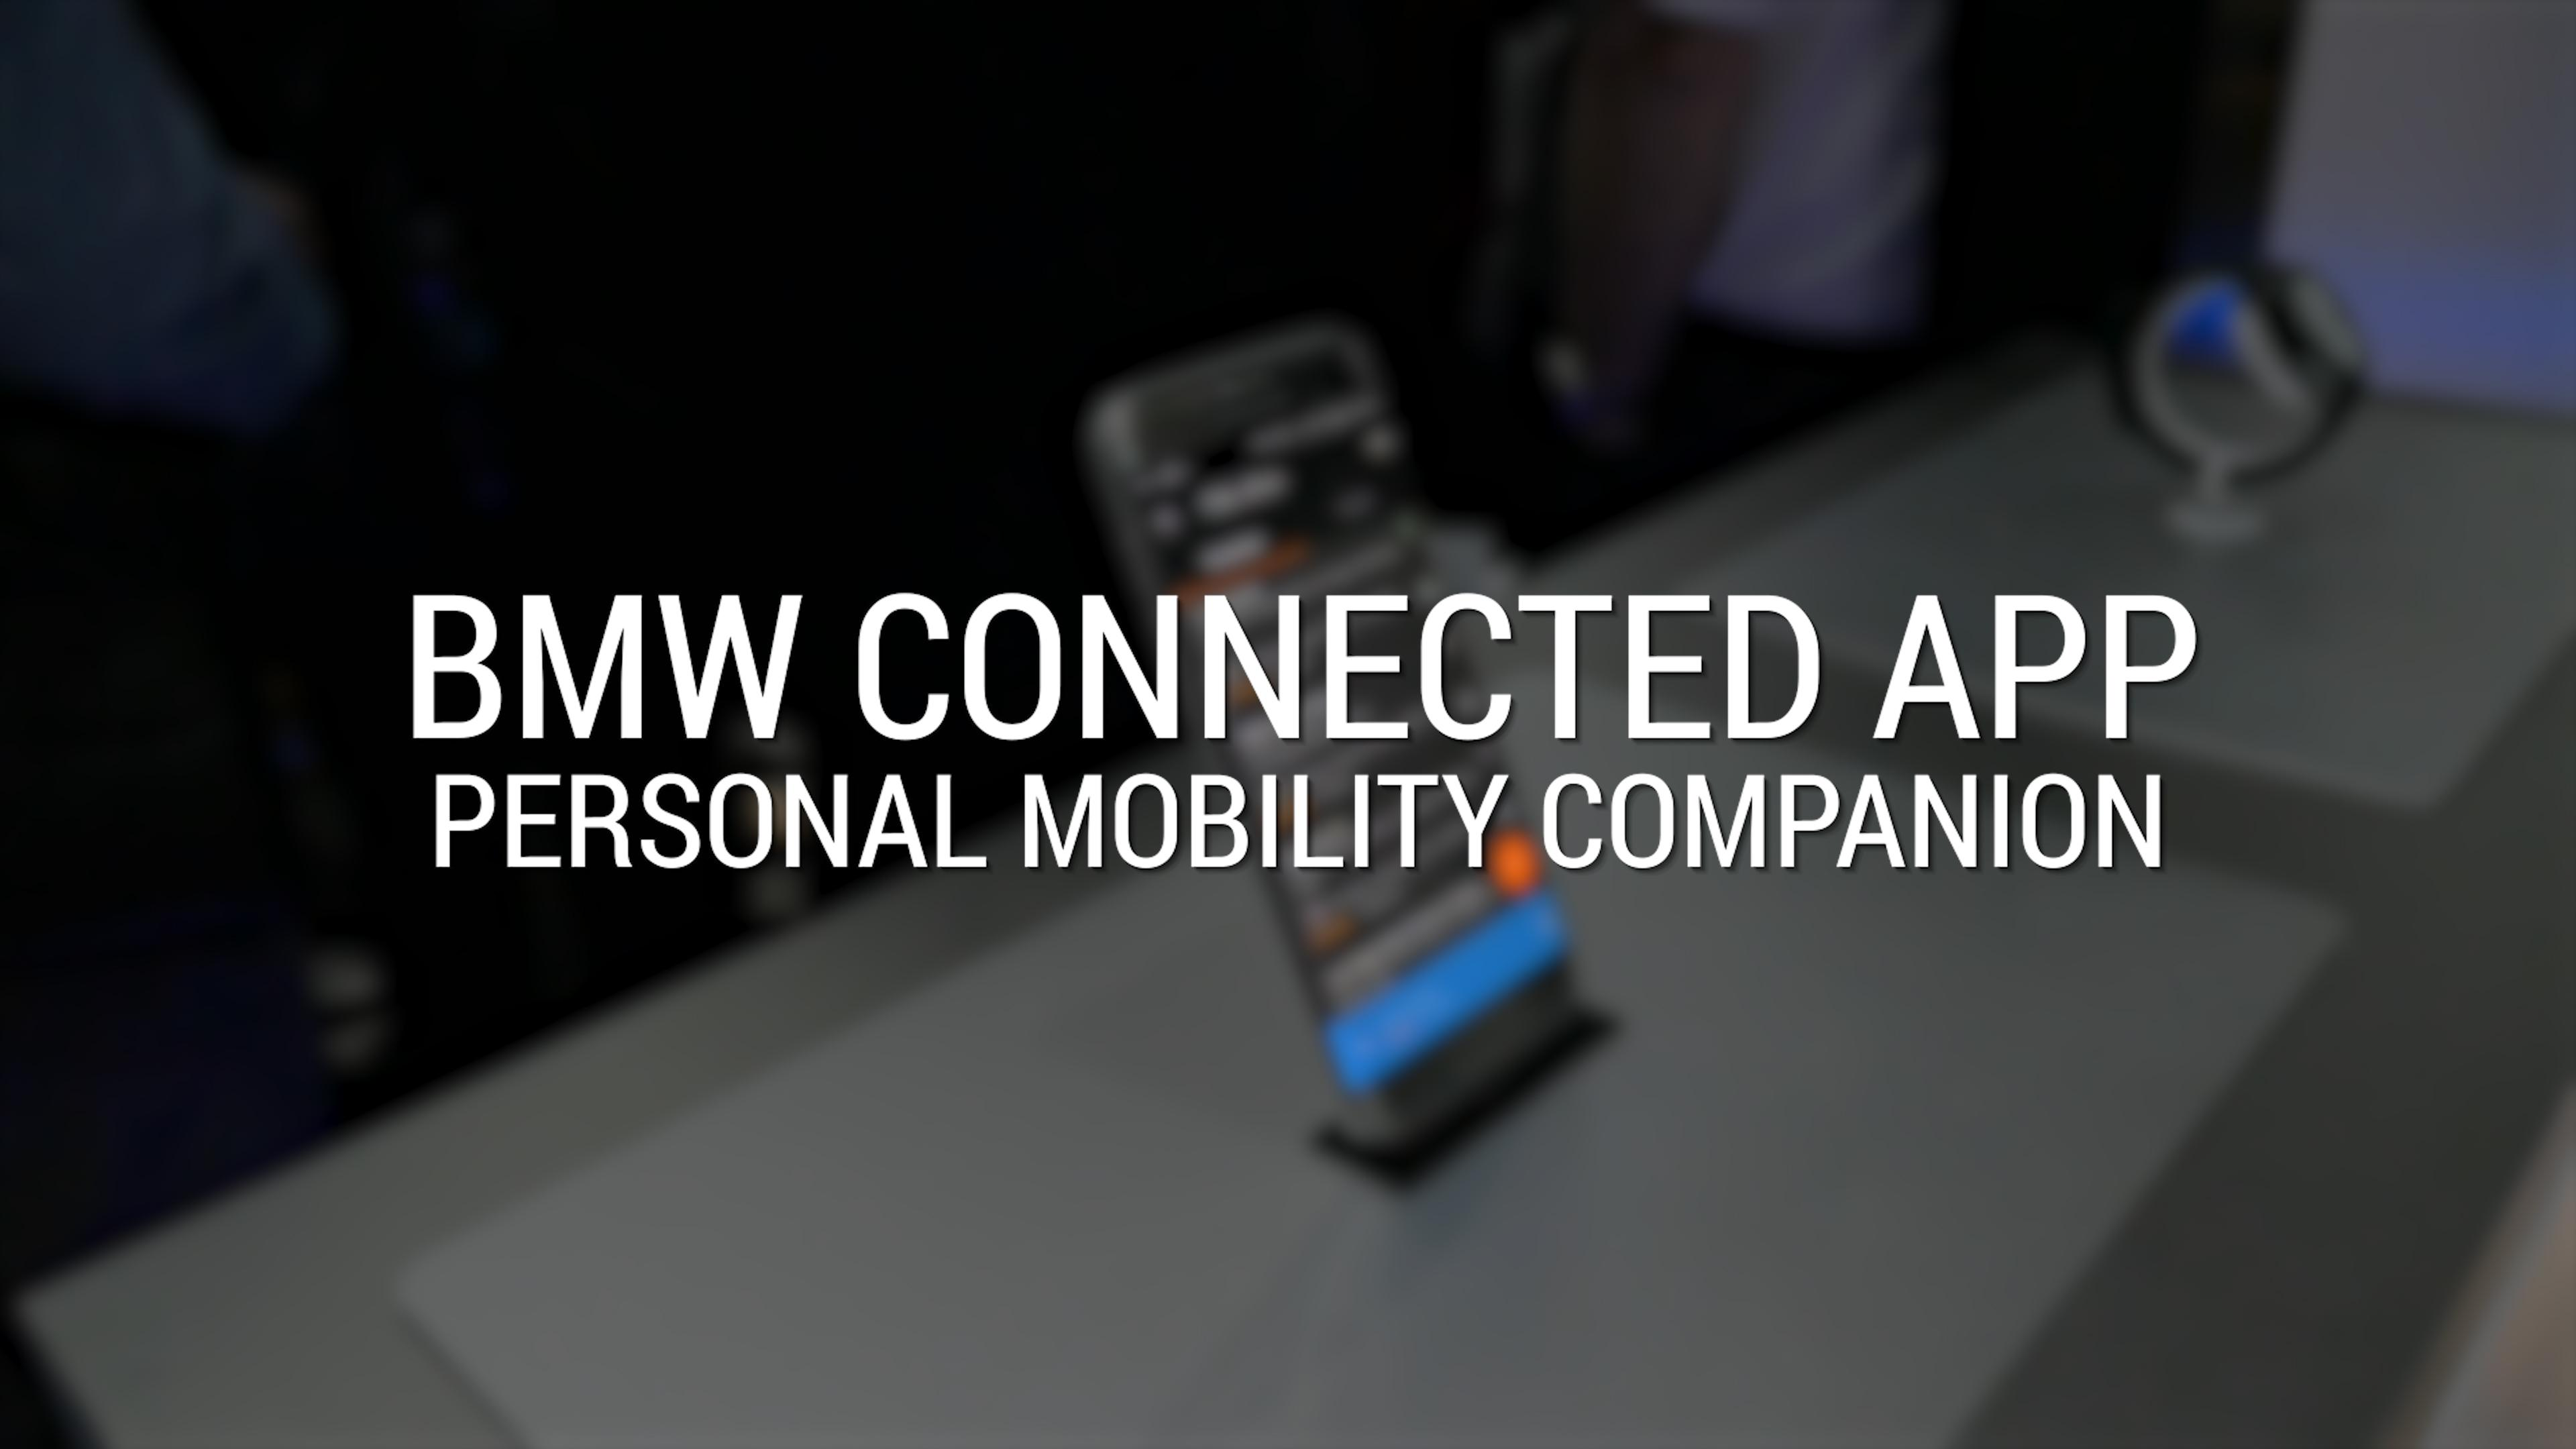 BMW Connected App Personal Mobility Companion | CES 2017 | Autoblog